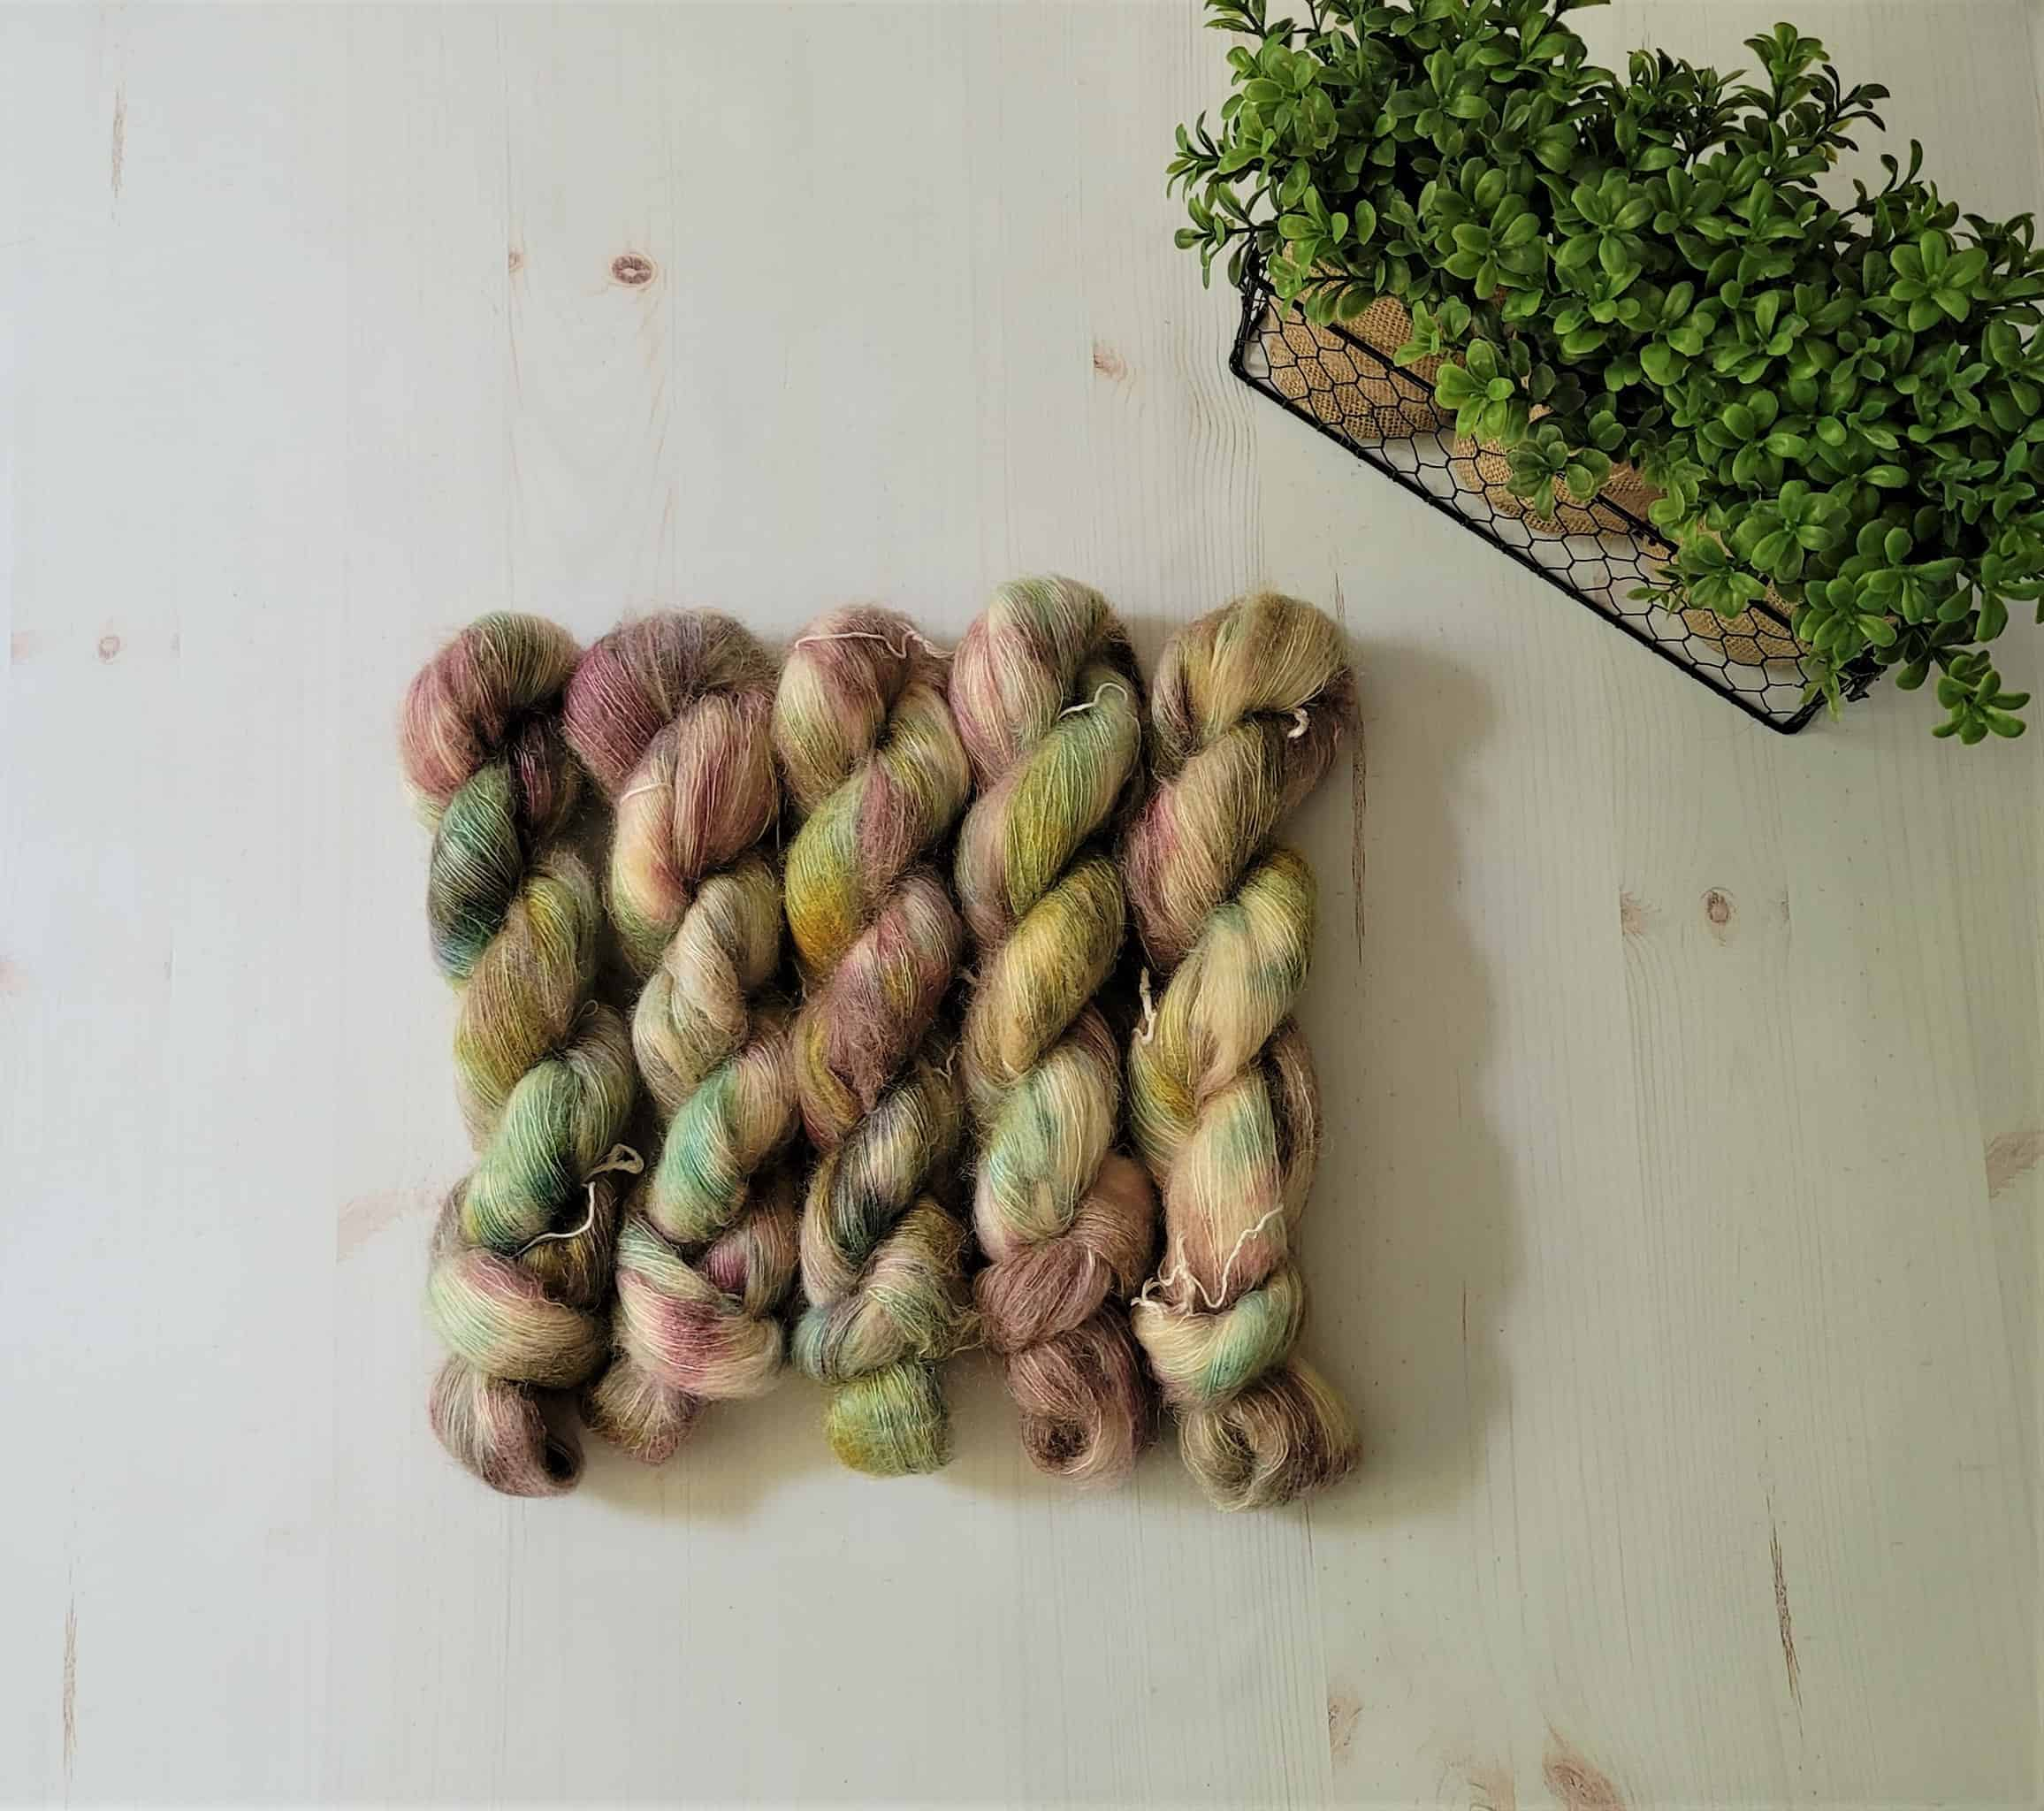 Pink and green speckled yarn.